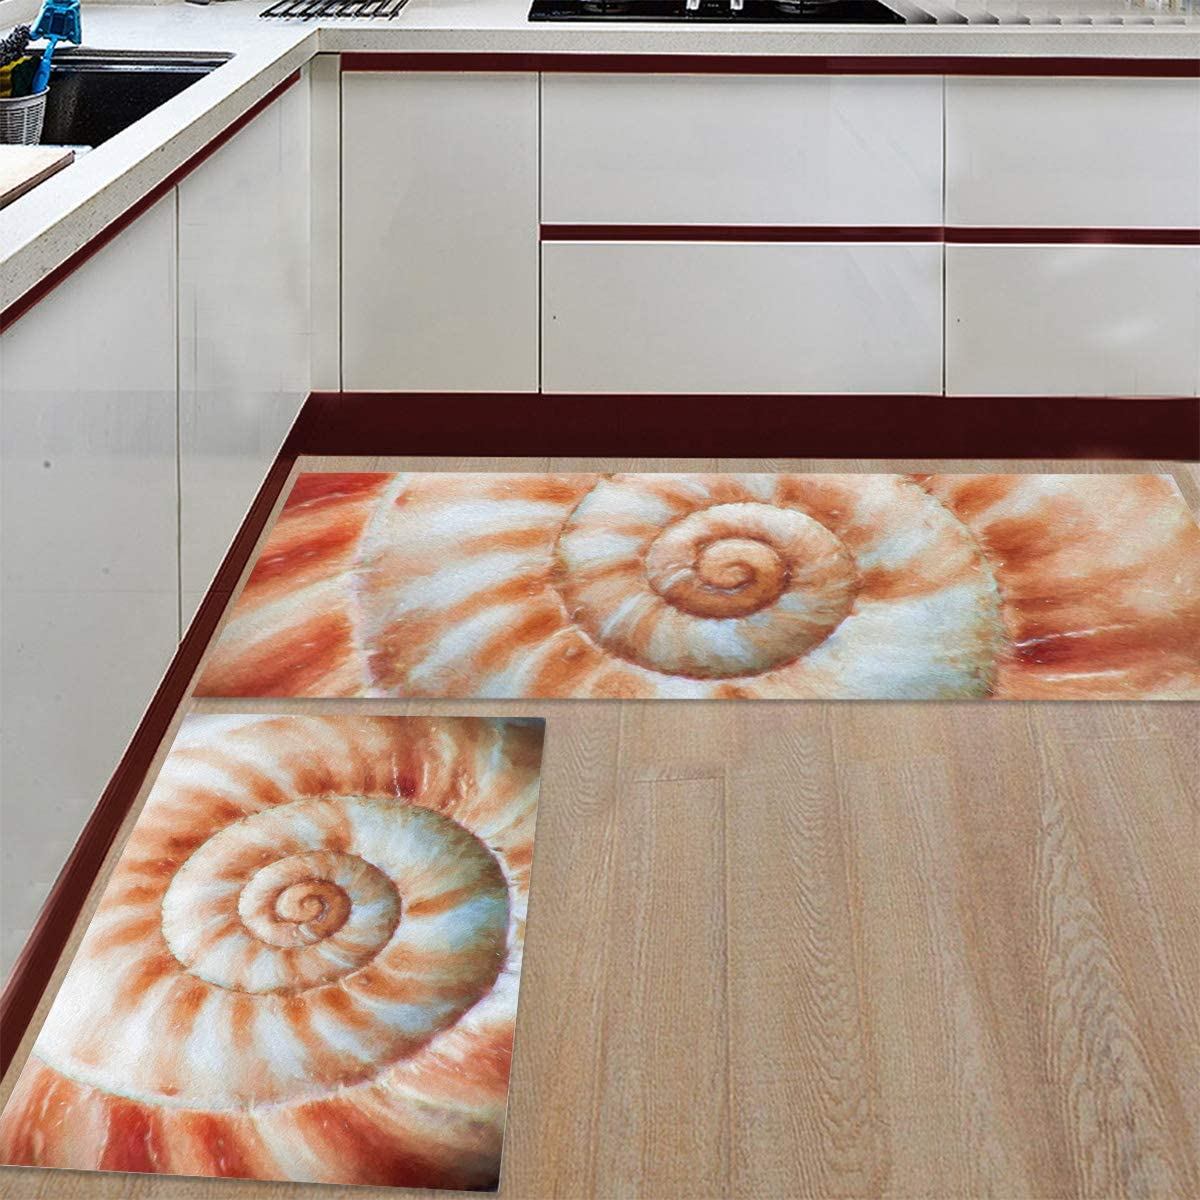 Advancey 2 Pieces 5% OFF Anti-Slip New color Kitchen Lively Texture Seashell Mats